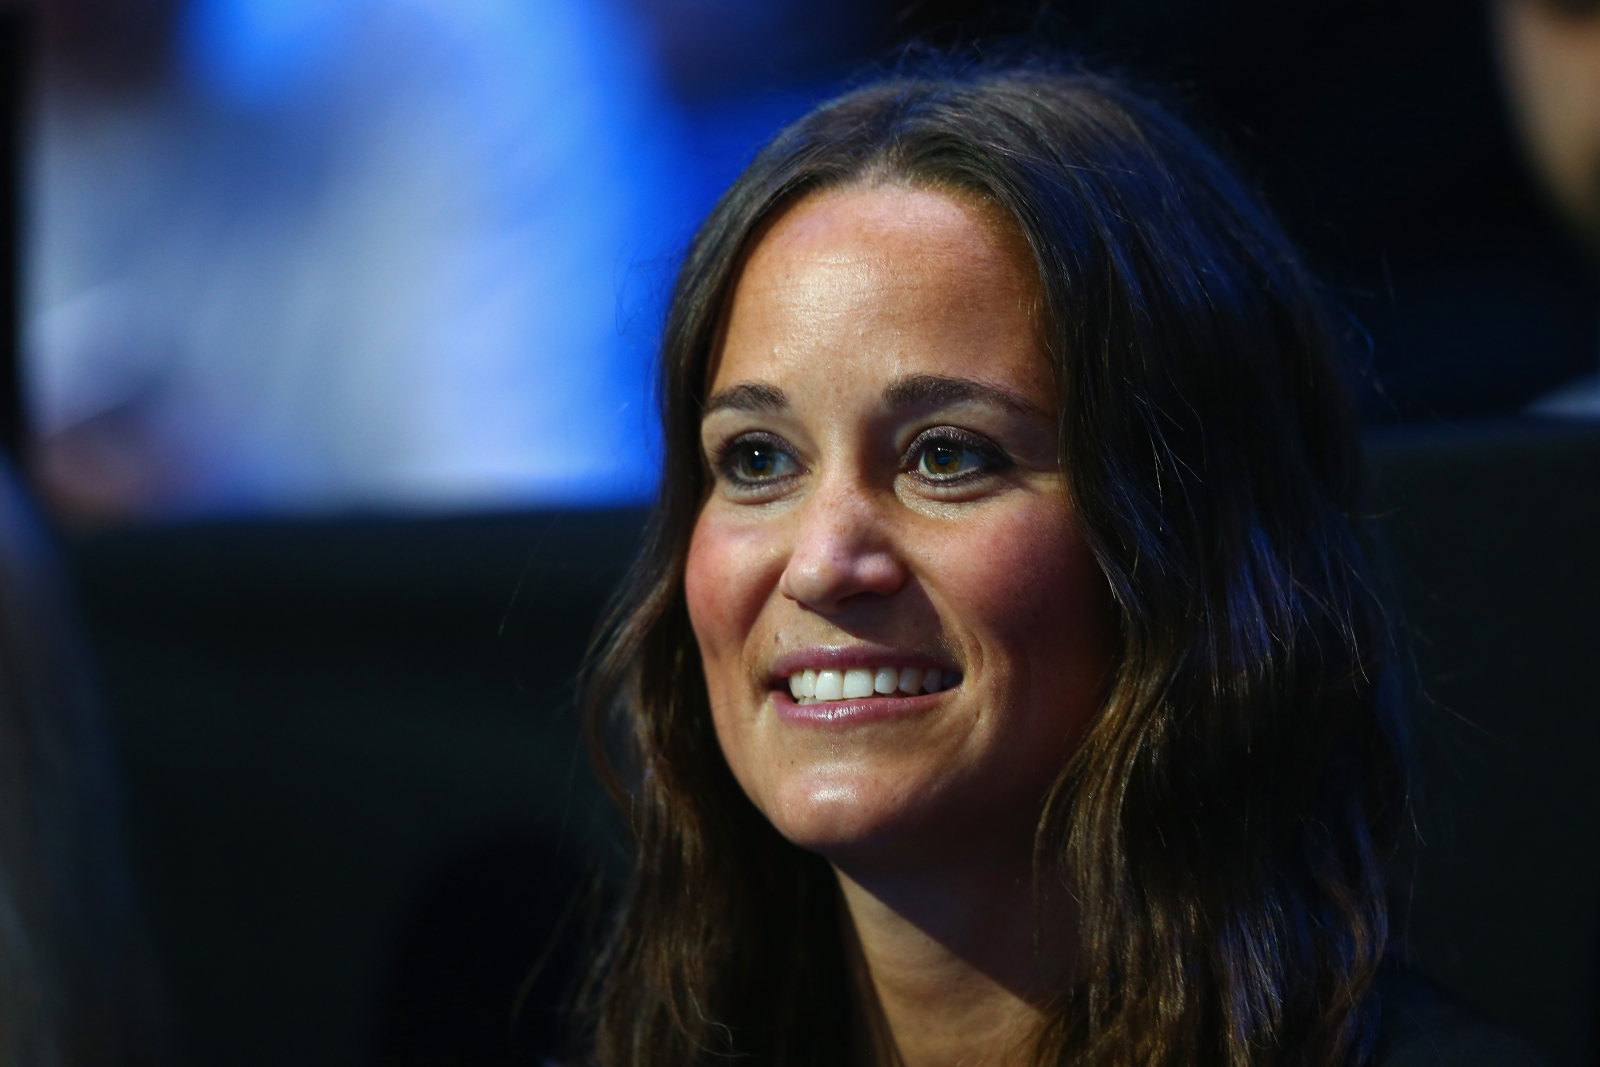 Pippa Middleton hack